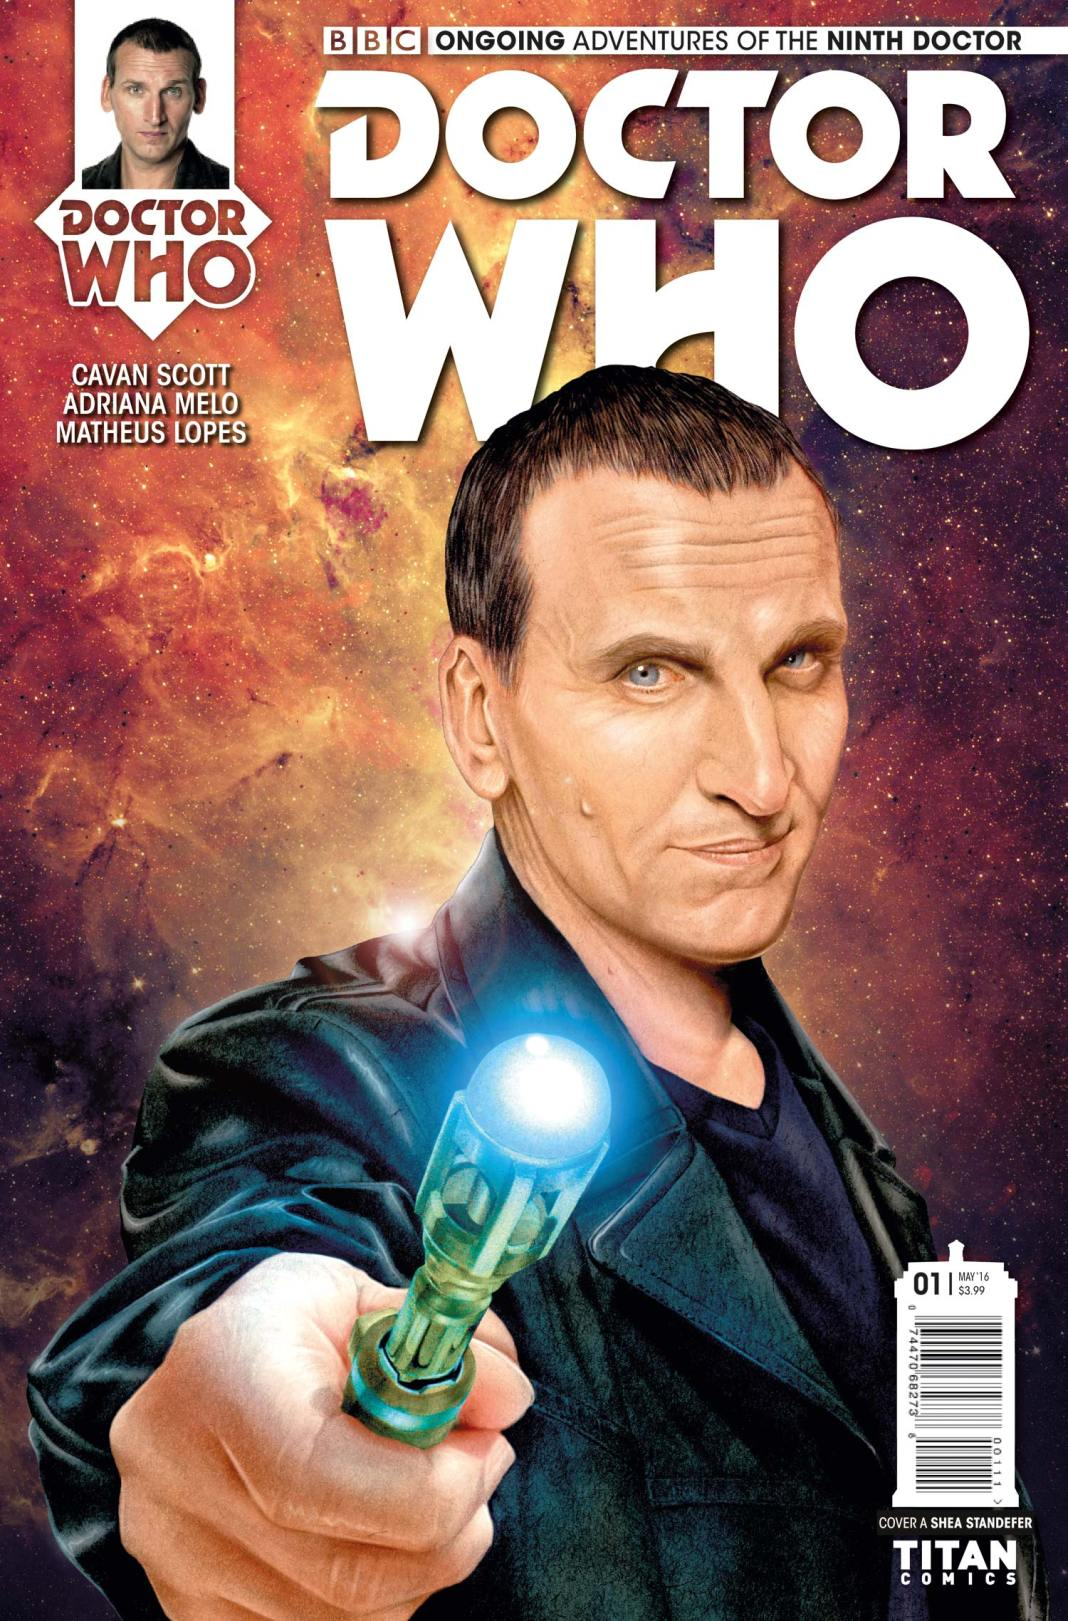 Doctor Who: Ninth Doctor #1 - Cover A